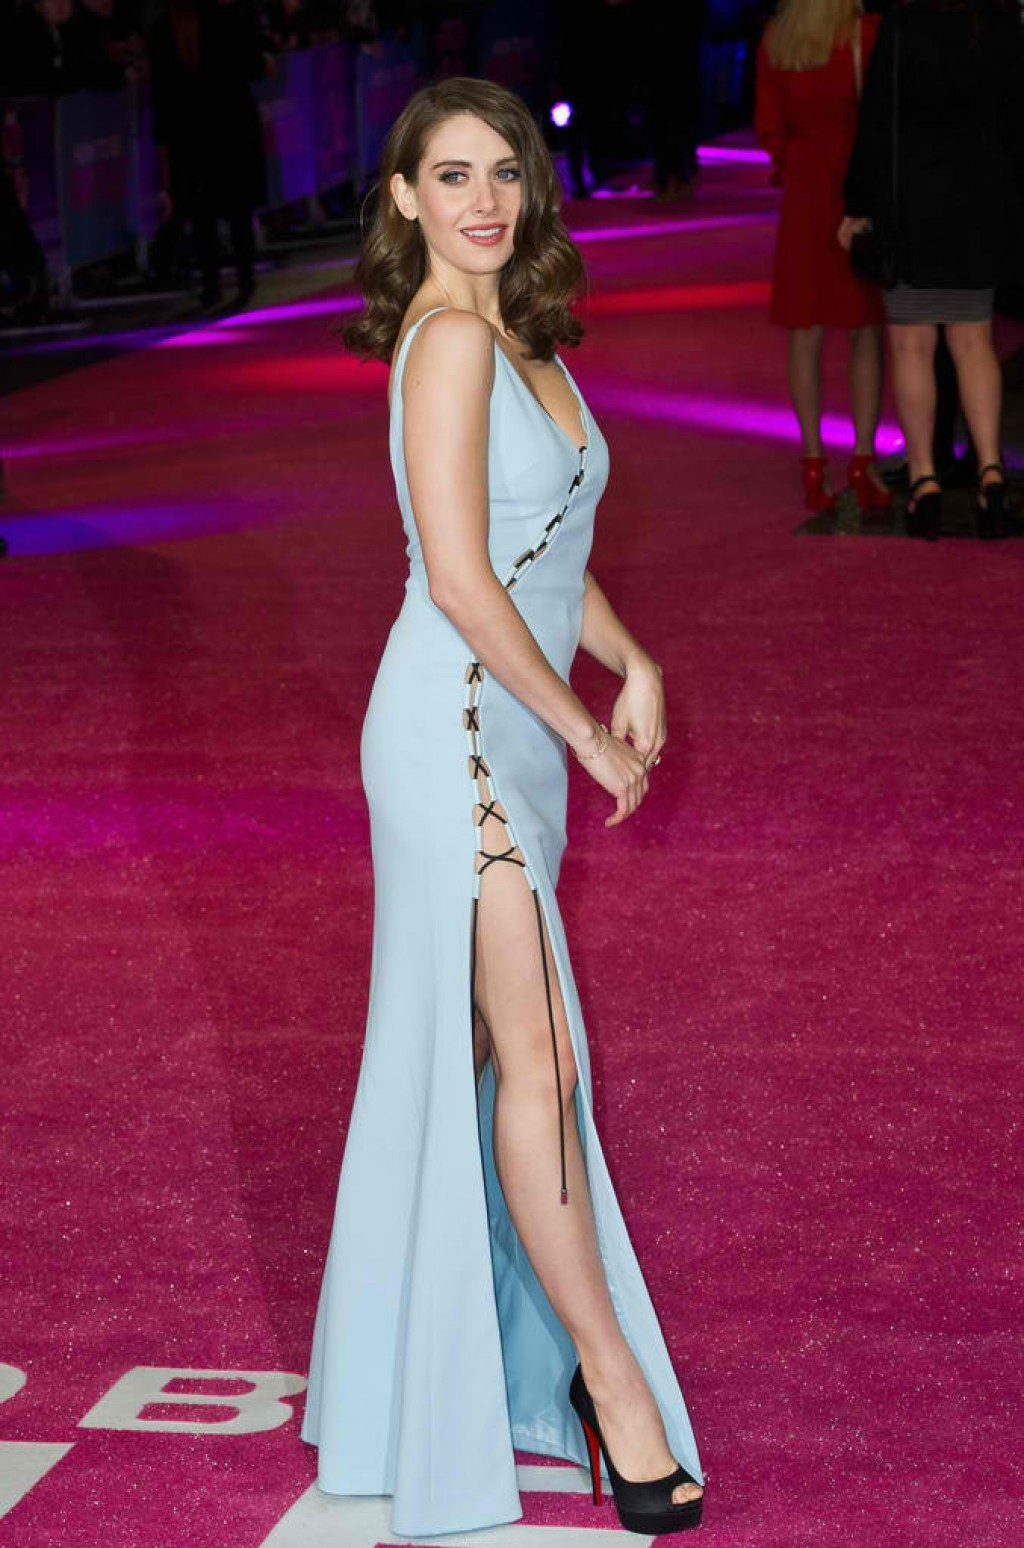 How-To-Be-Single-London-Premiere-Alison-Brie-Dress-1024x1548